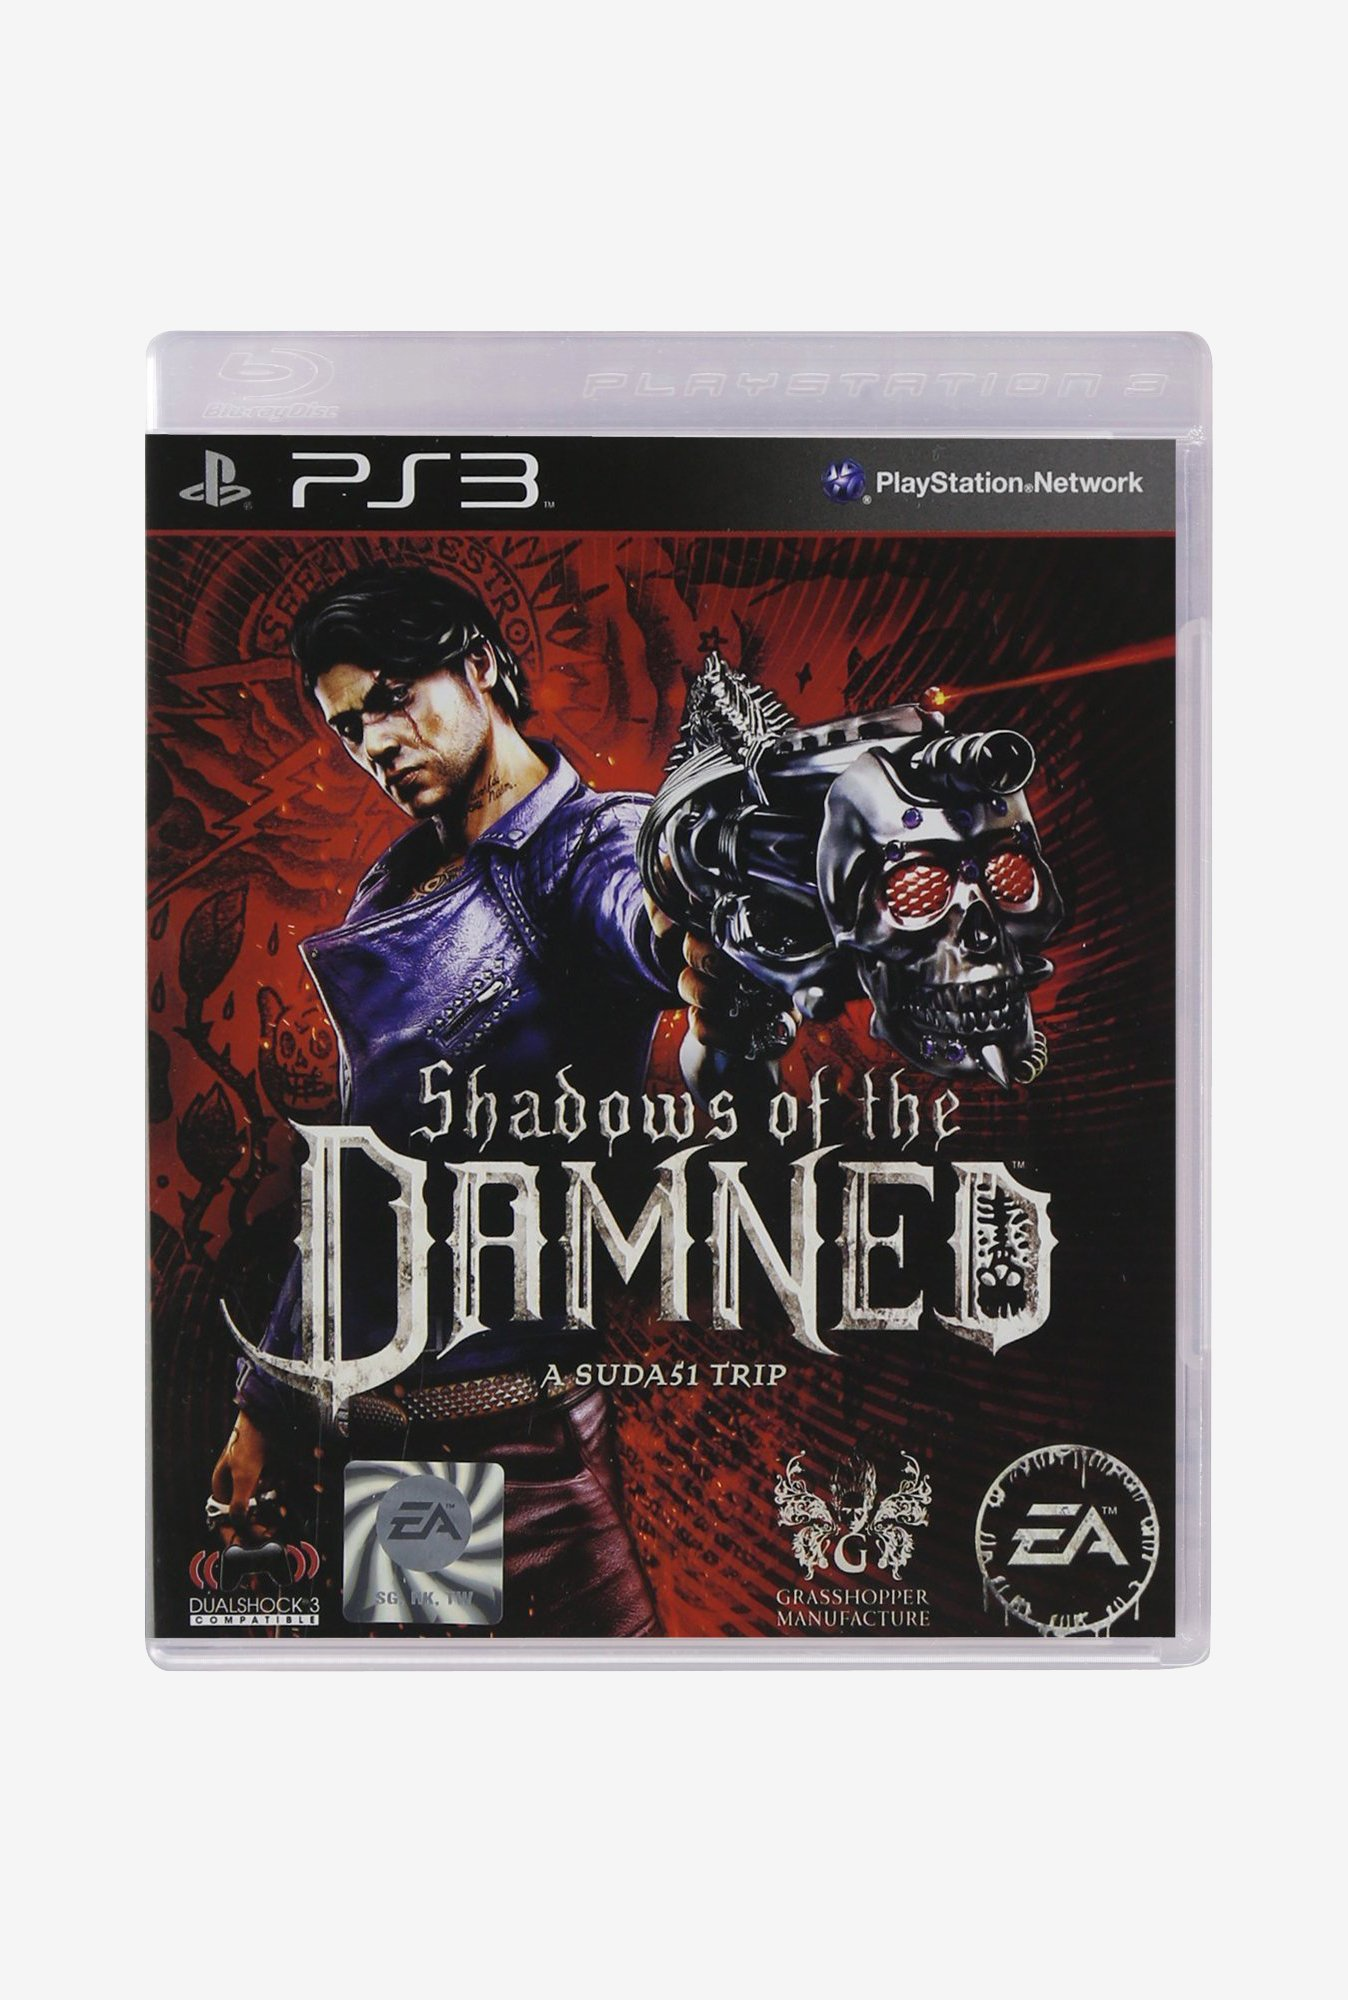 PS3 Shadows of Damned Game